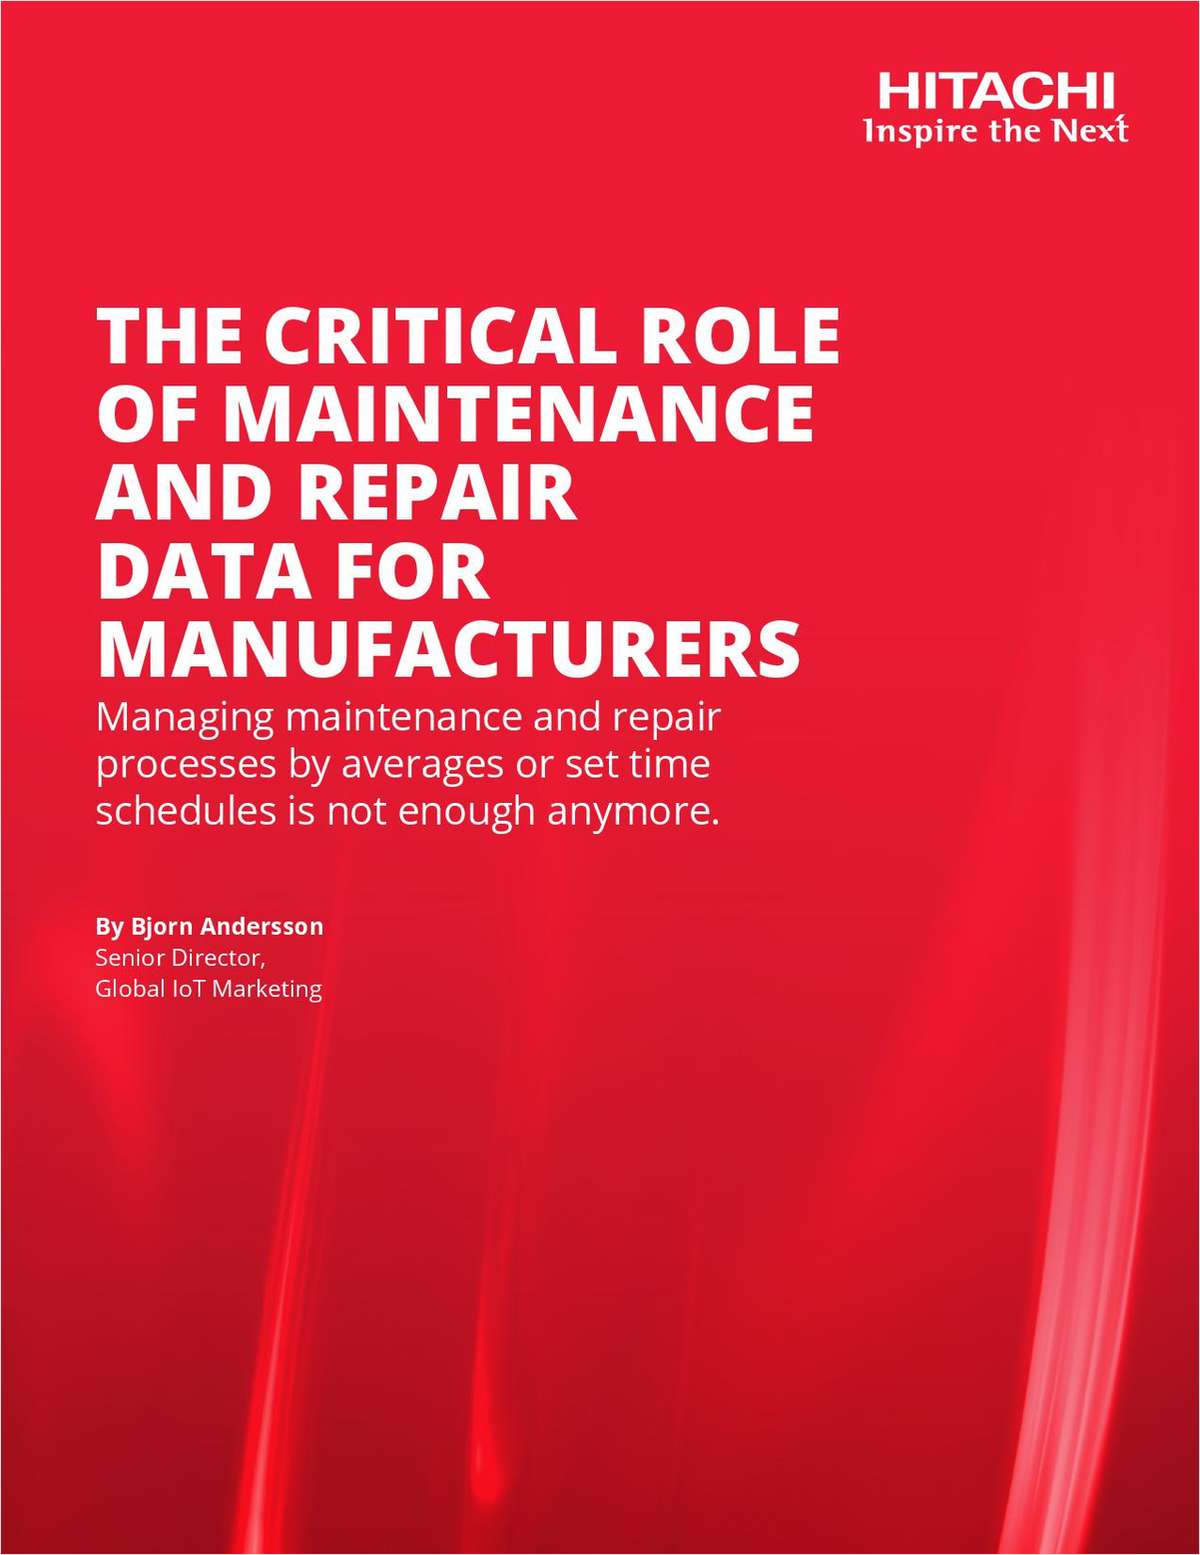 The Critical Role of Maintenance and Repair Data for Manufacturers